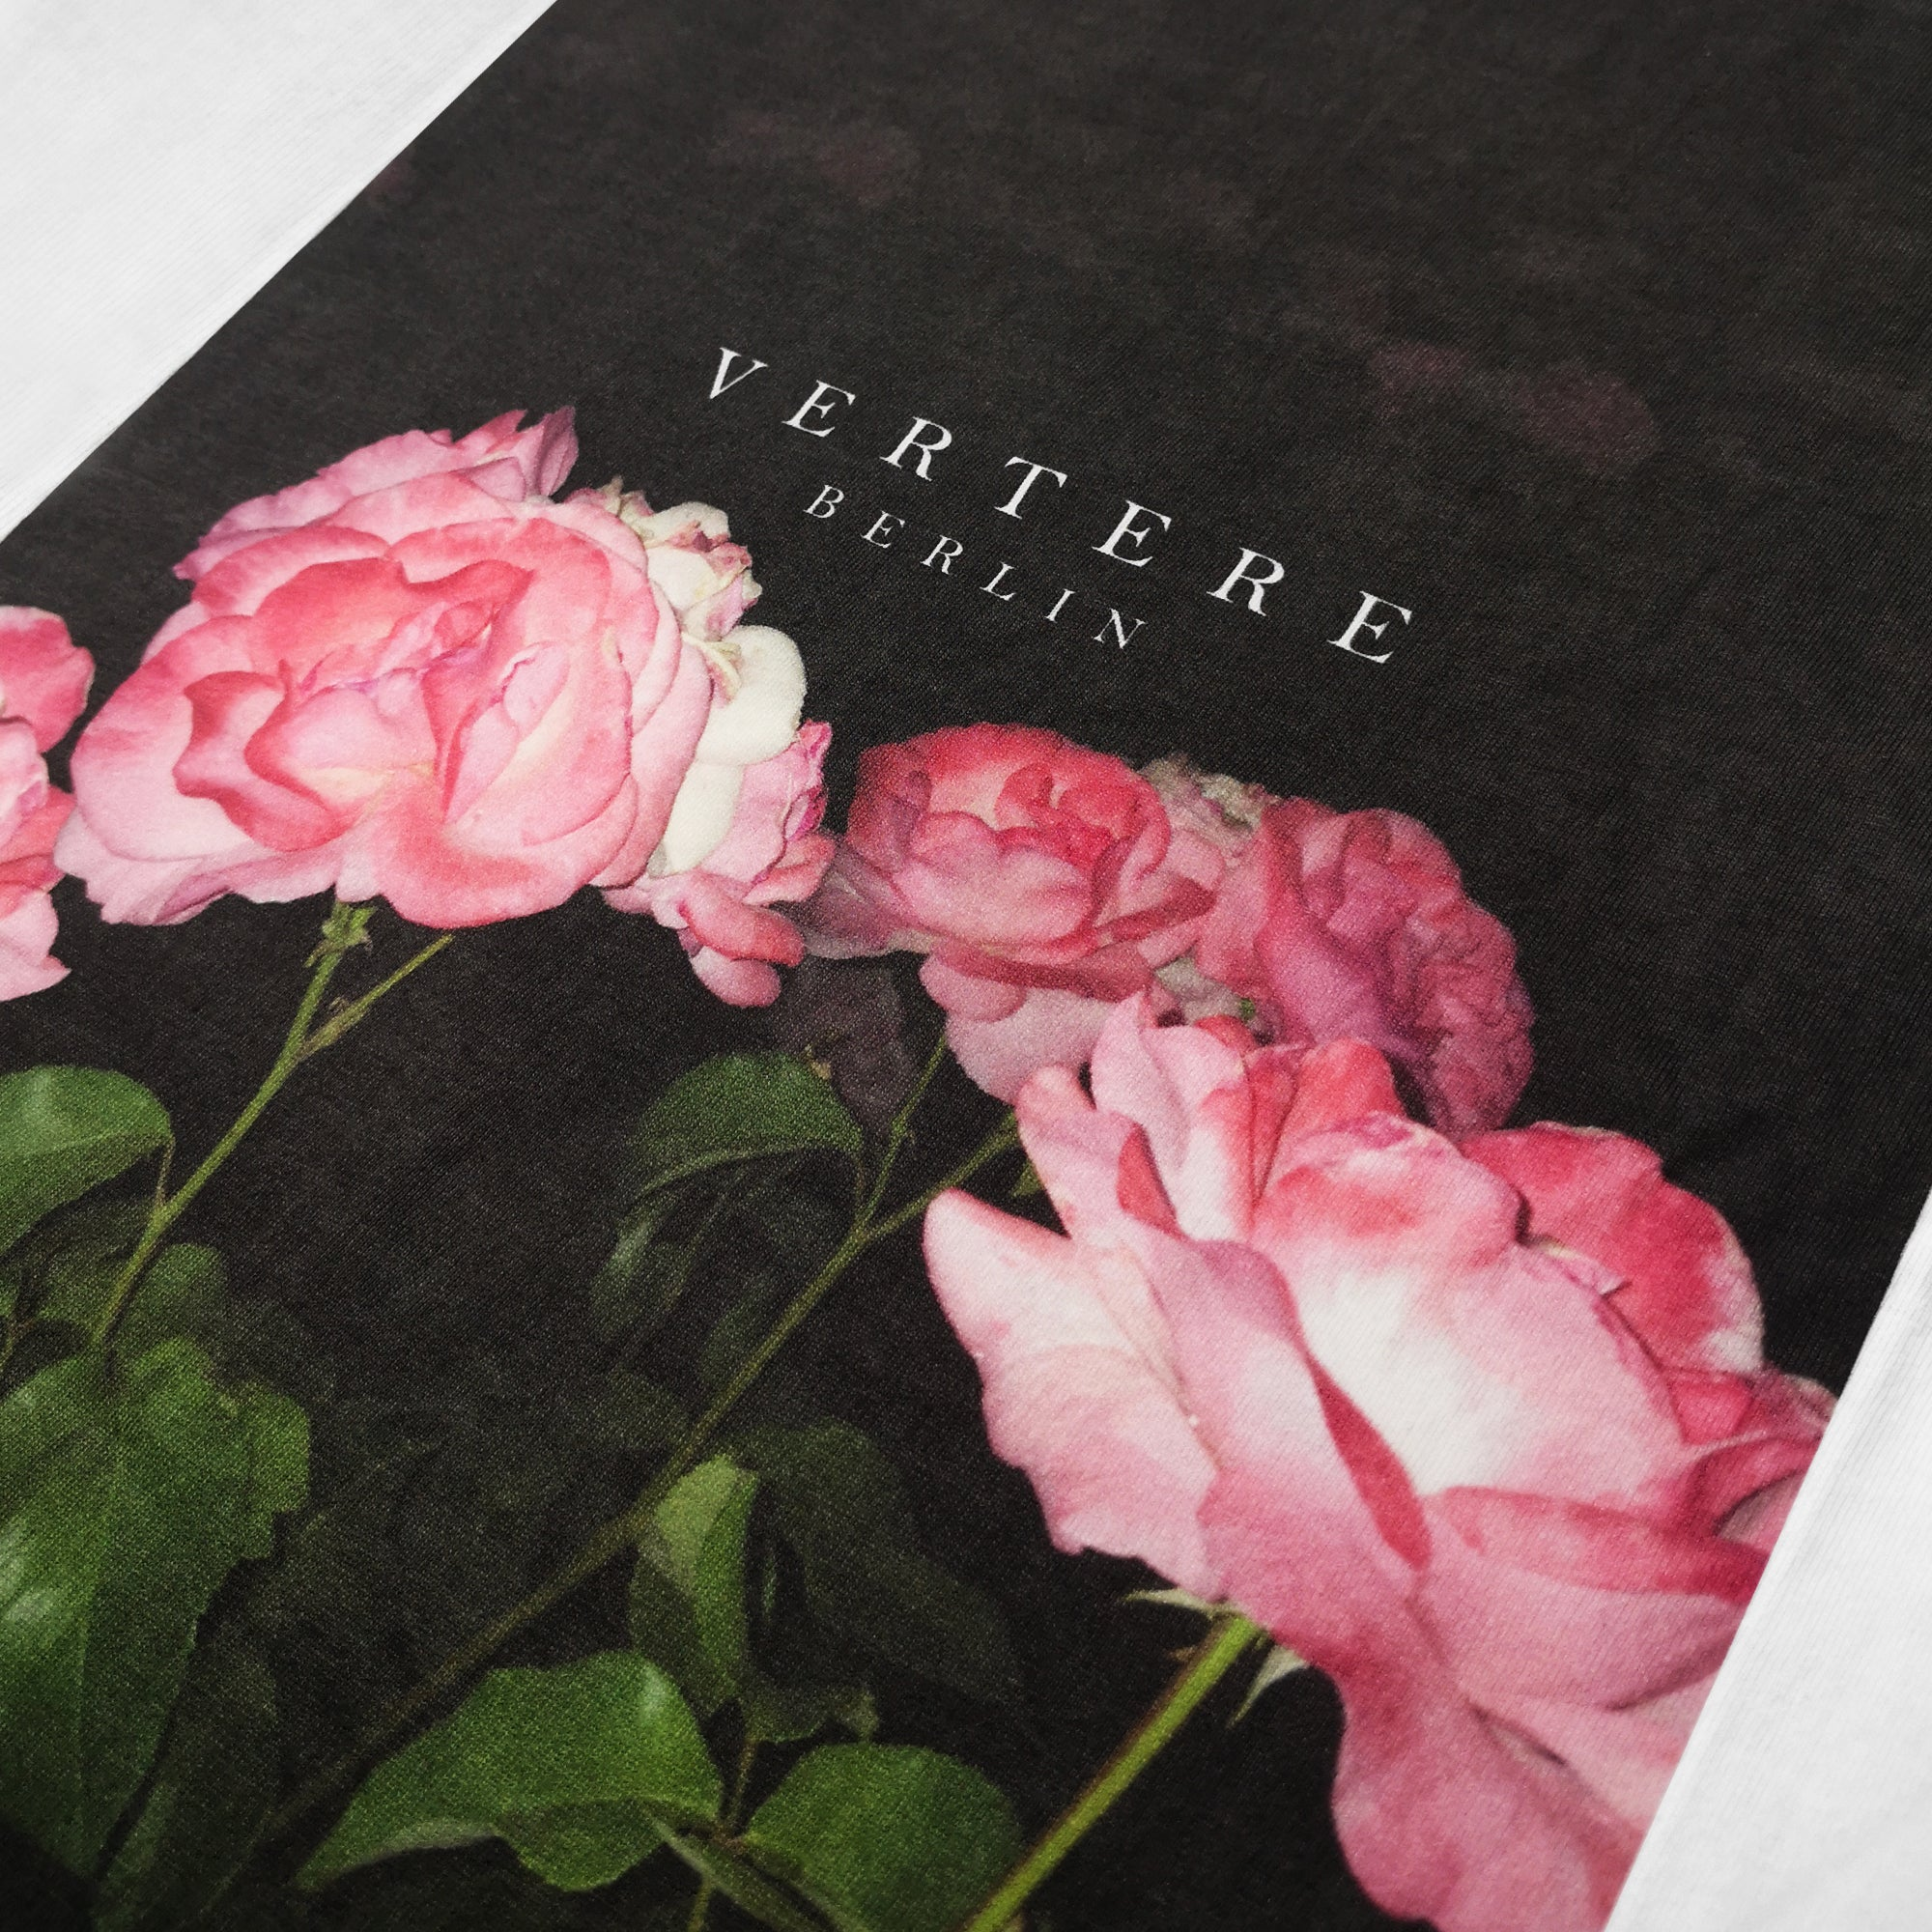 VINTAGE ROSE 2 T-SHIRT - WHITE